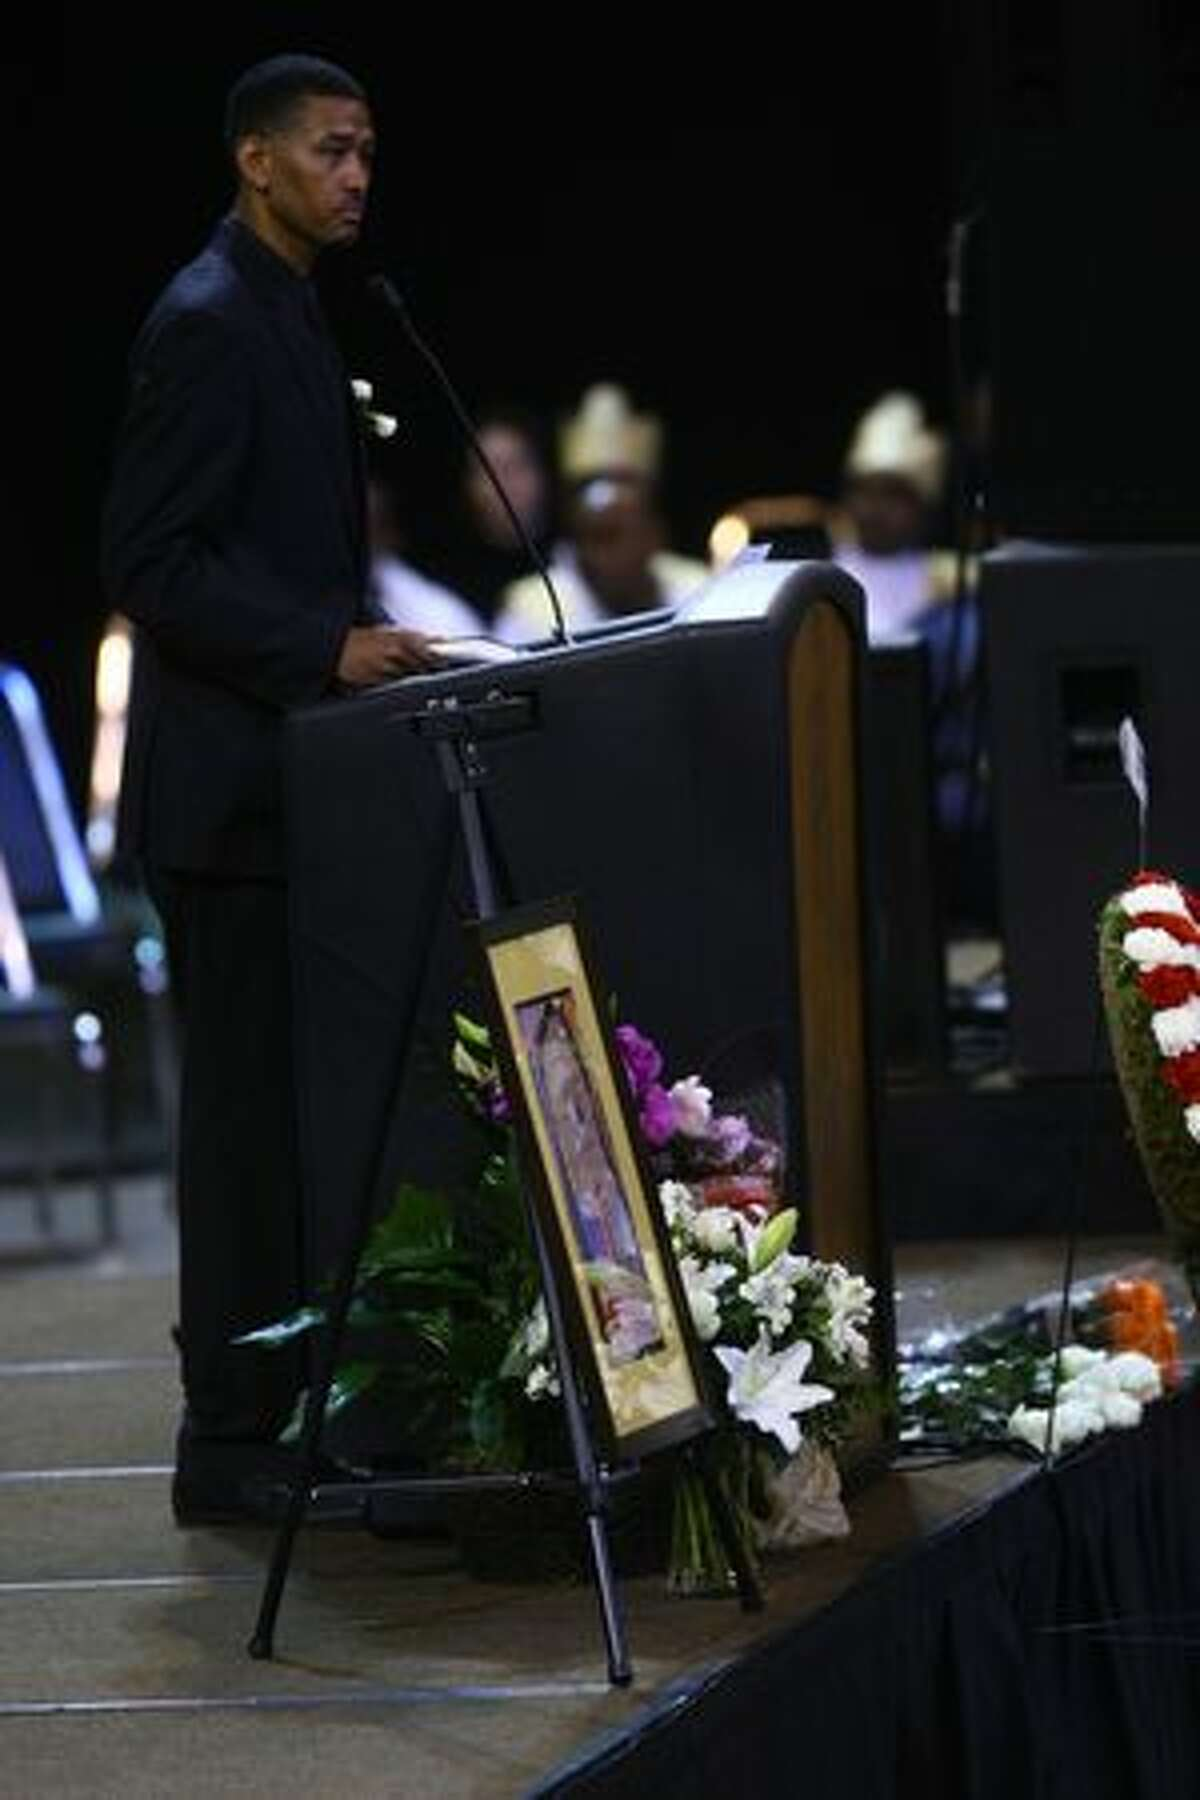 Daniel Gebregiorgis, uncle of the victims, speaks during the funeral service at KeyArena Friday.